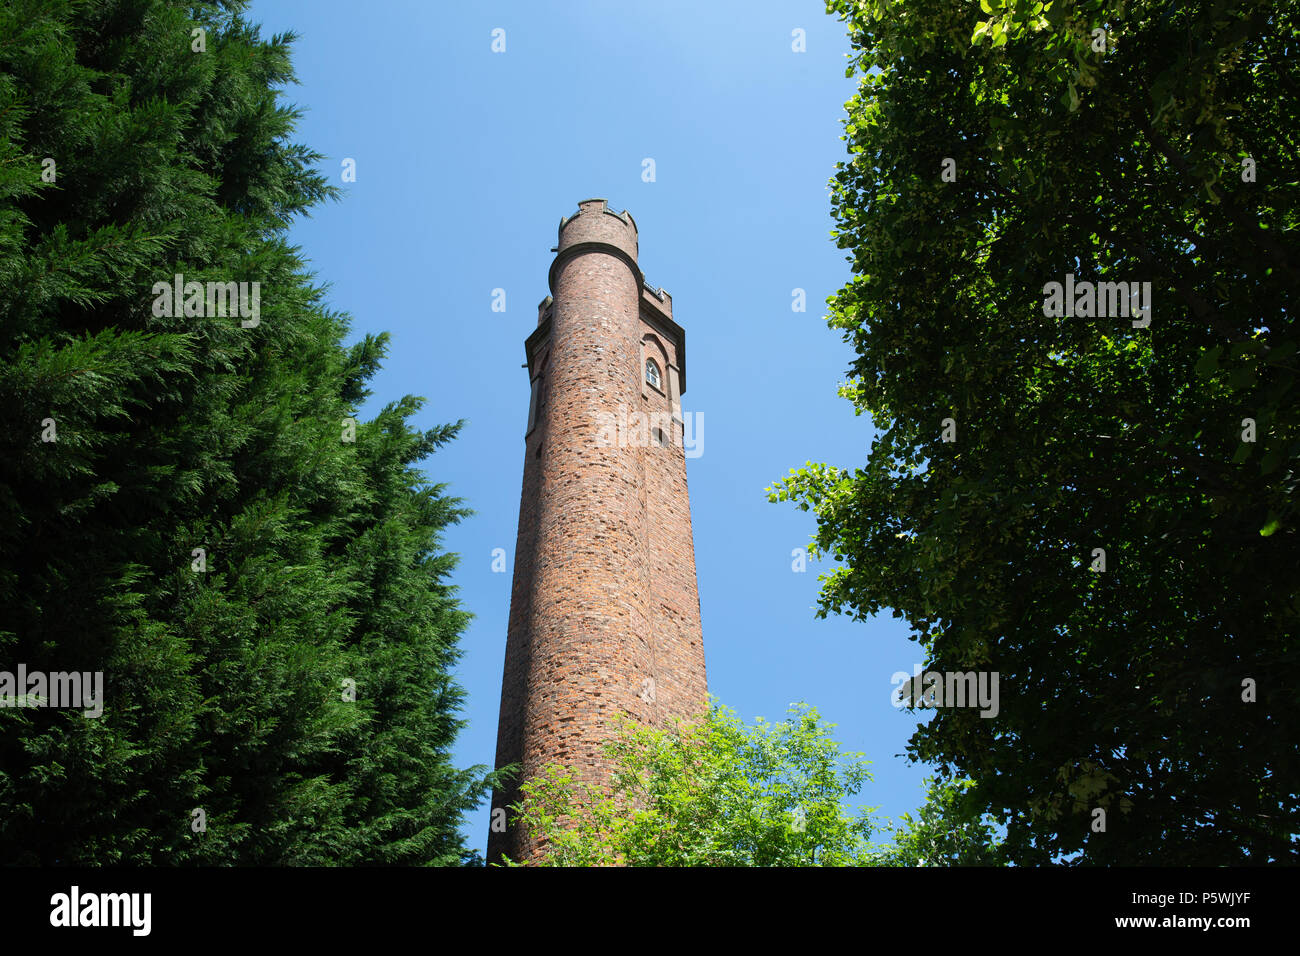 Perrott's Folly, The enchanting tower that inspired Tolkien's 'Two Towers' in Lord of the Rings. - Stock Image